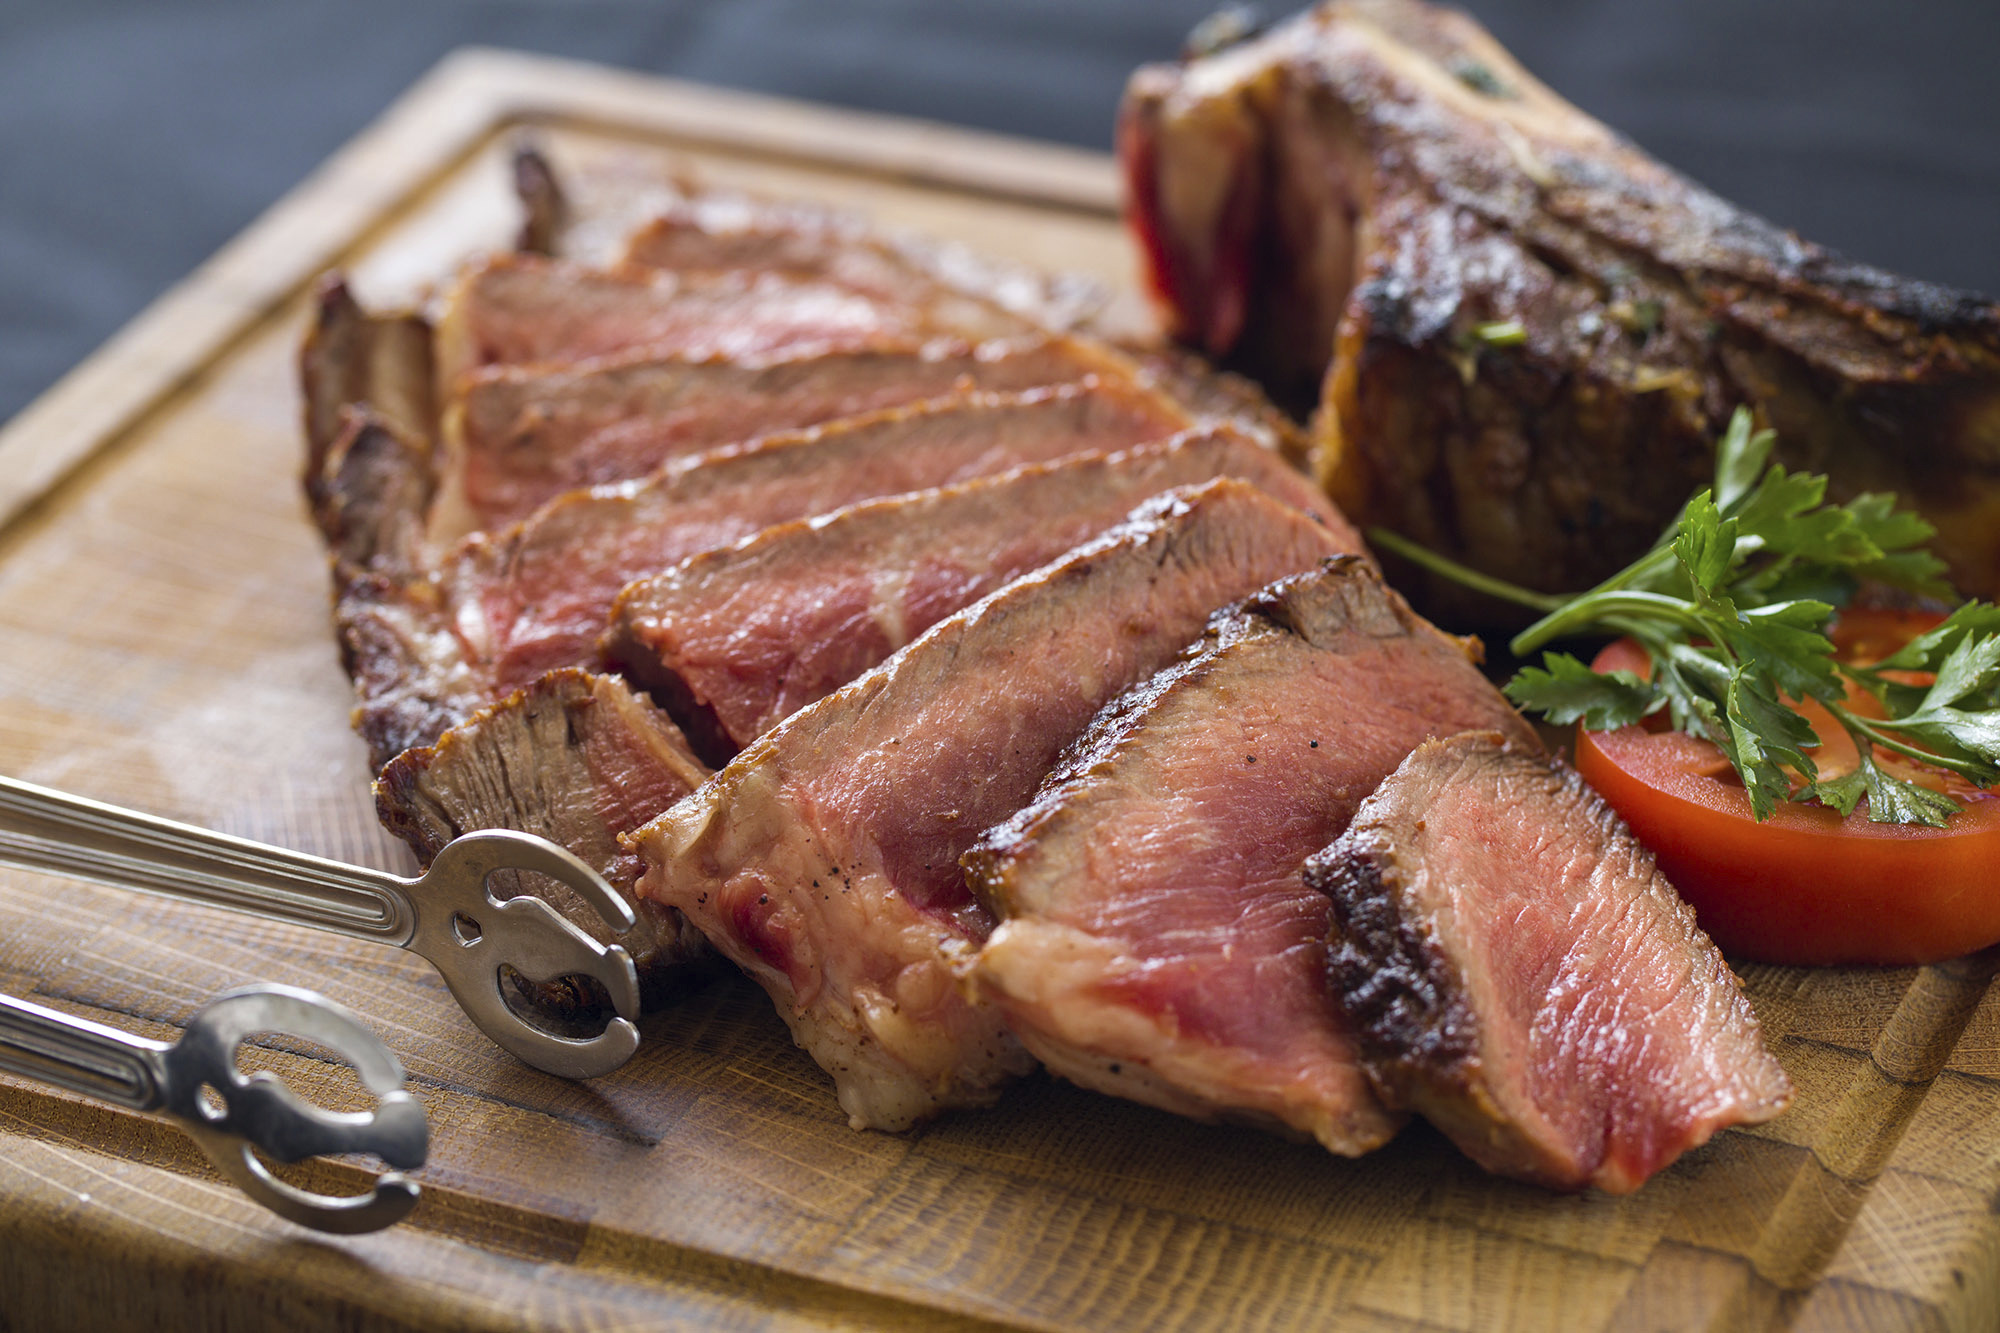 Where to Eat Steak in San Diego